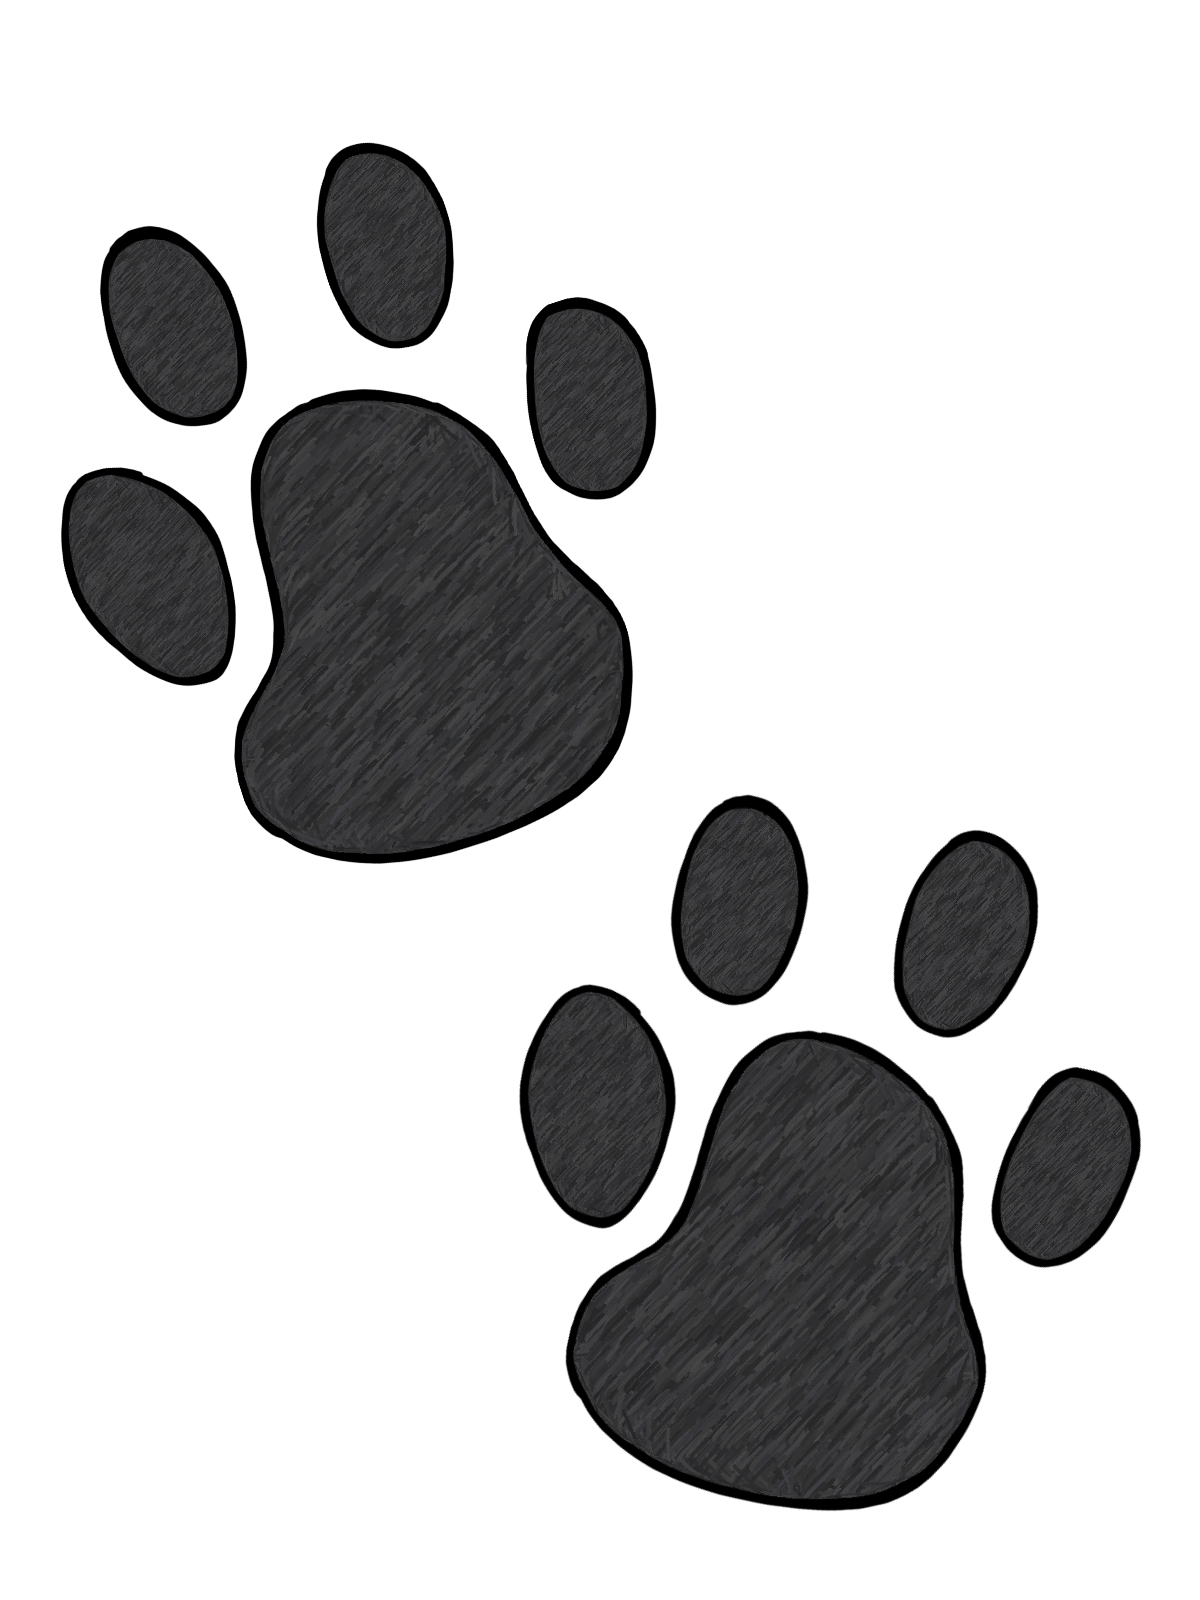 1200x1600 Grizzly Bear Paw Print Clipart Clipart Free Clipart Images